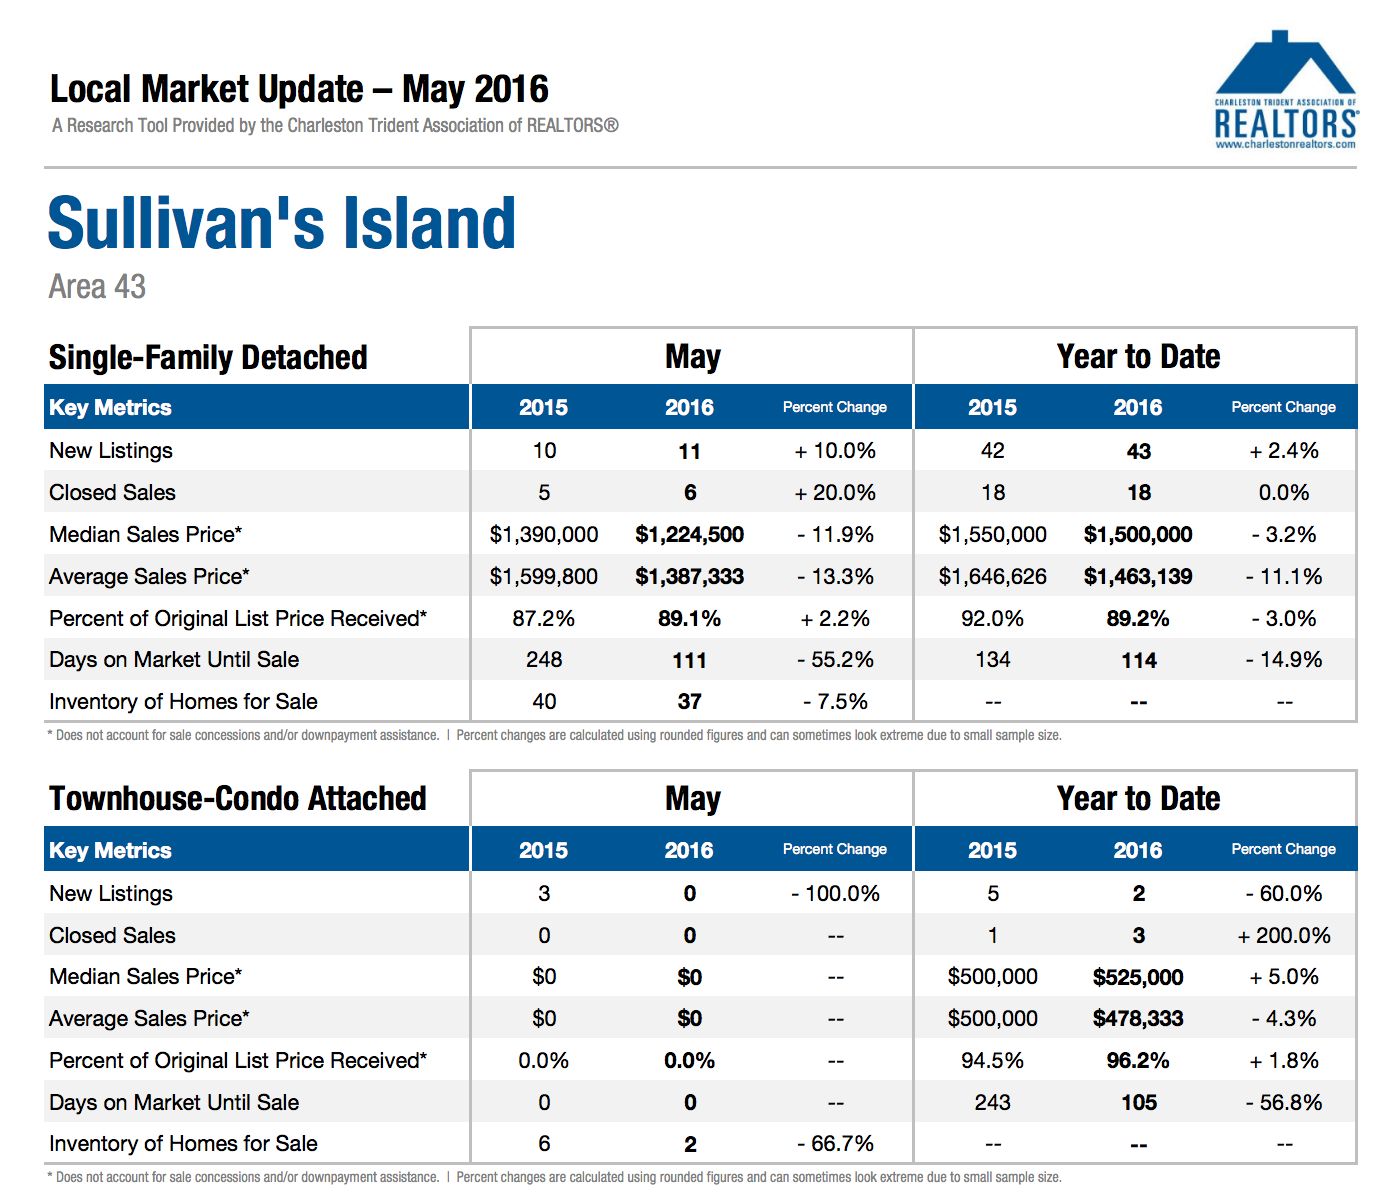 Sullivans Island Market Update May 2016